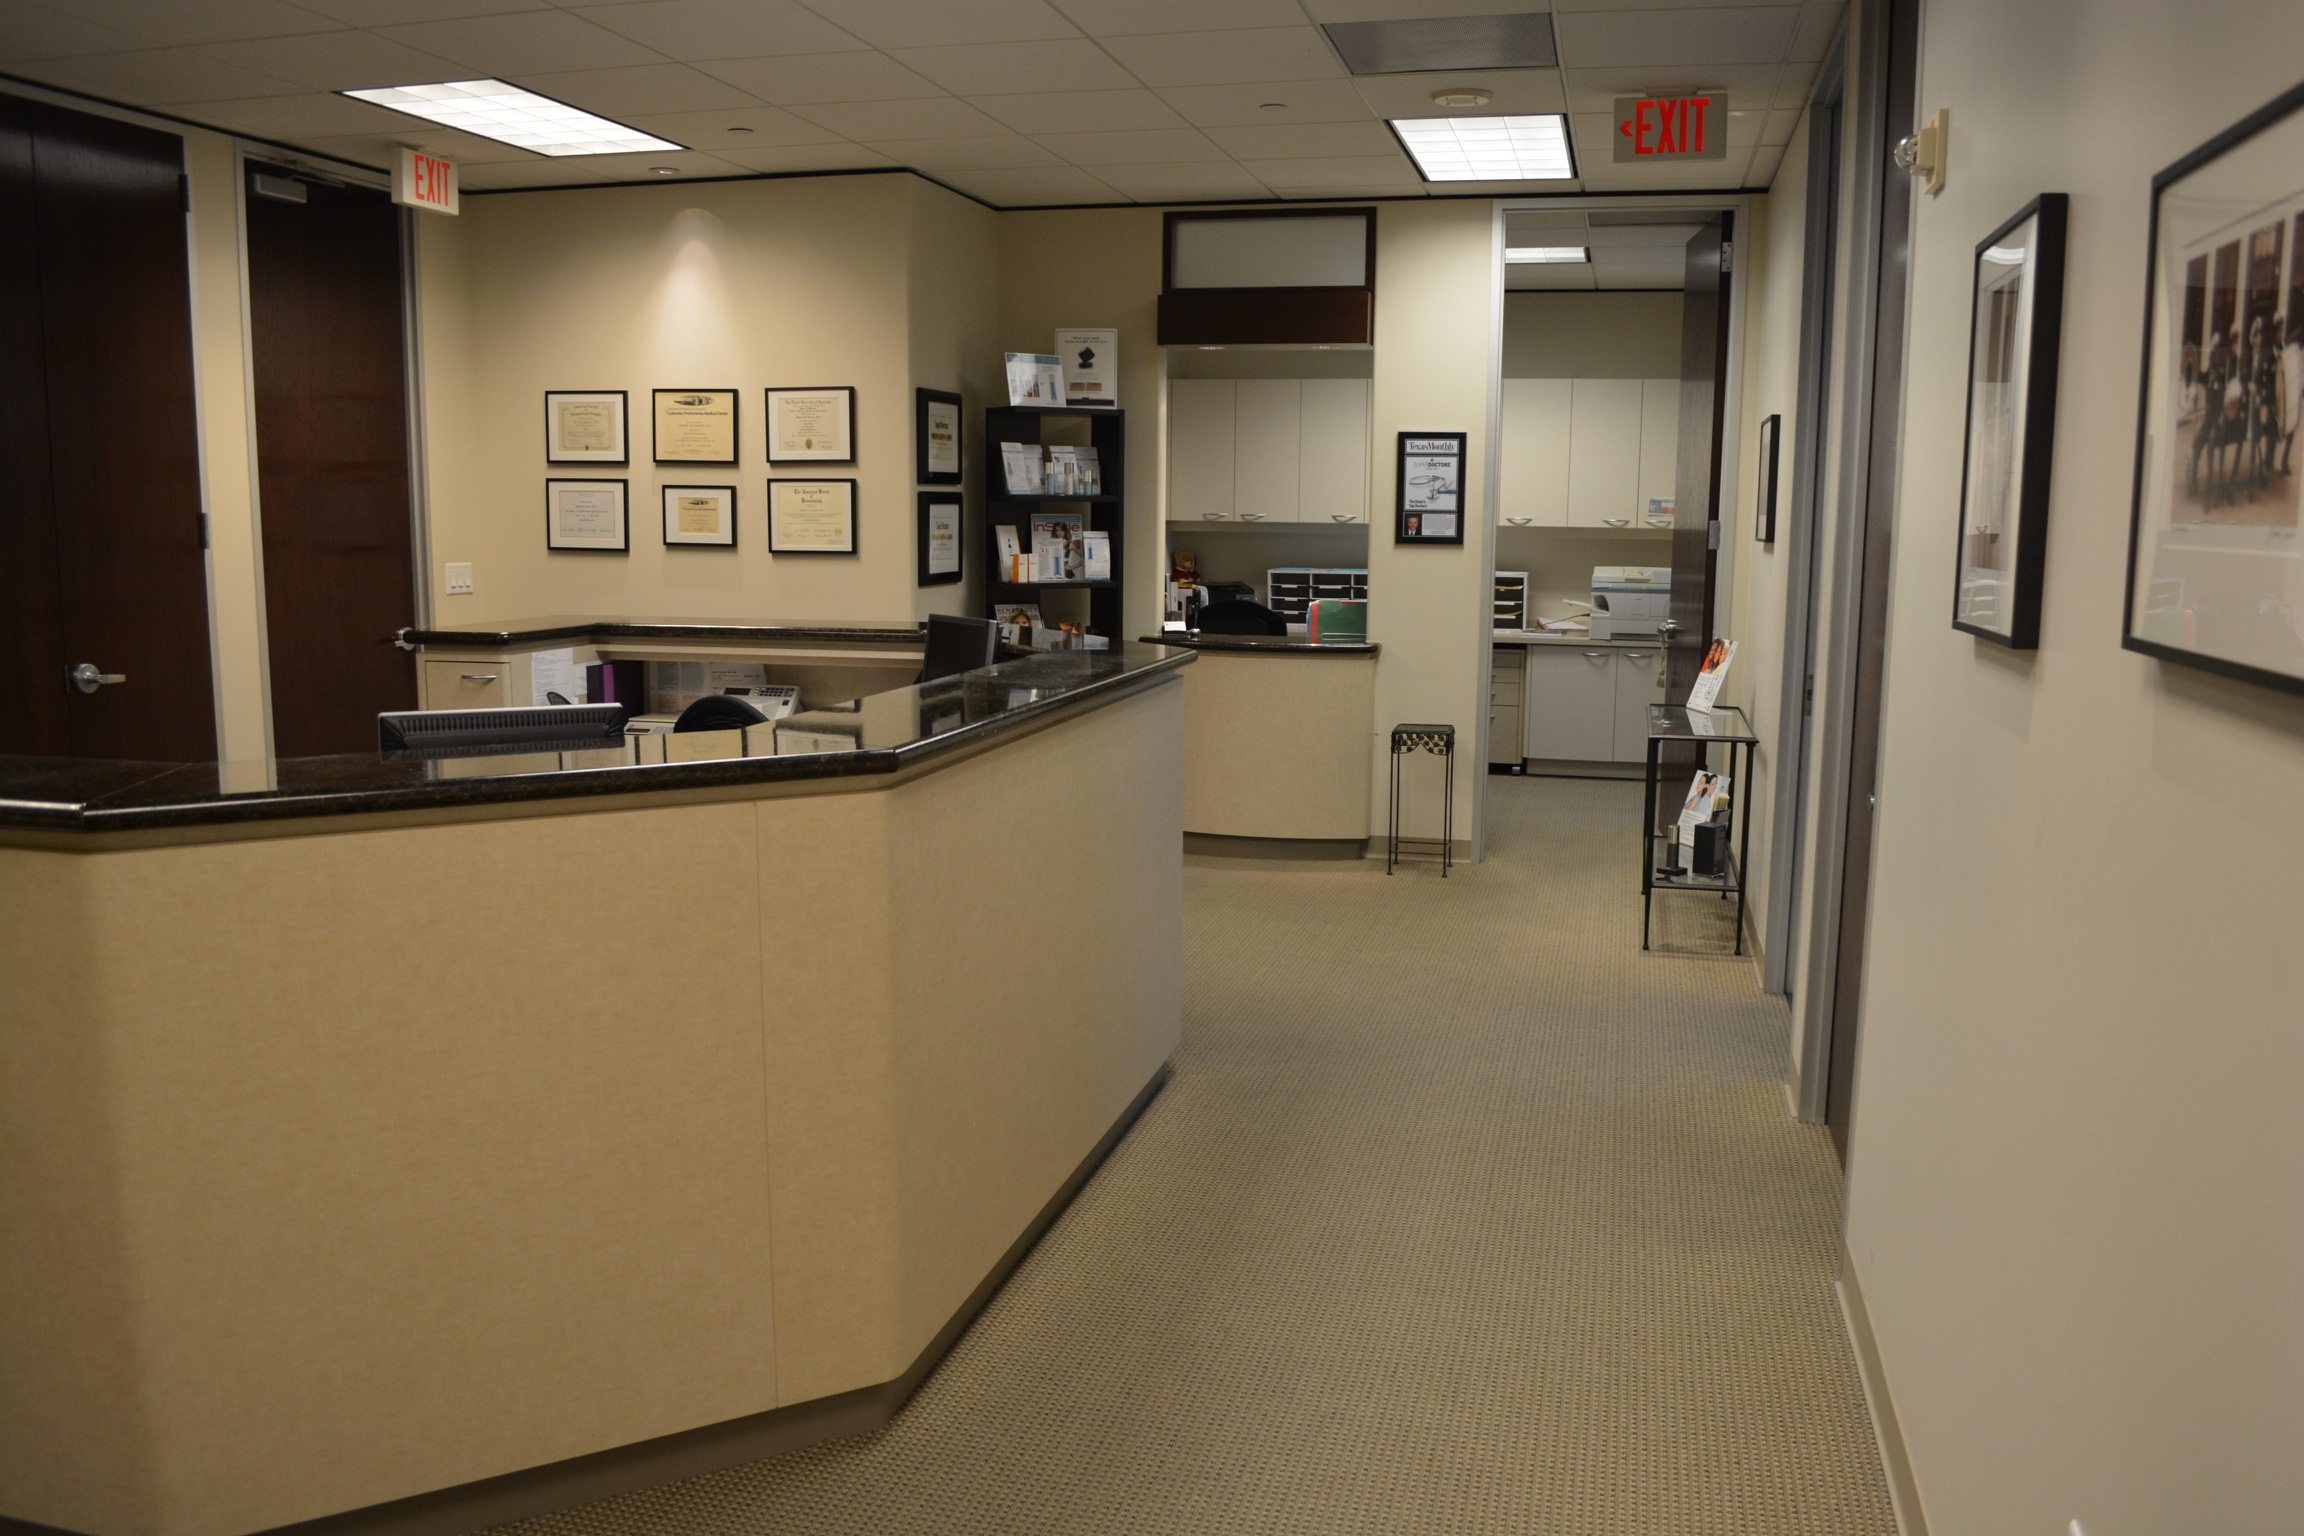 Office interior showing photographs, art and clinical workstation